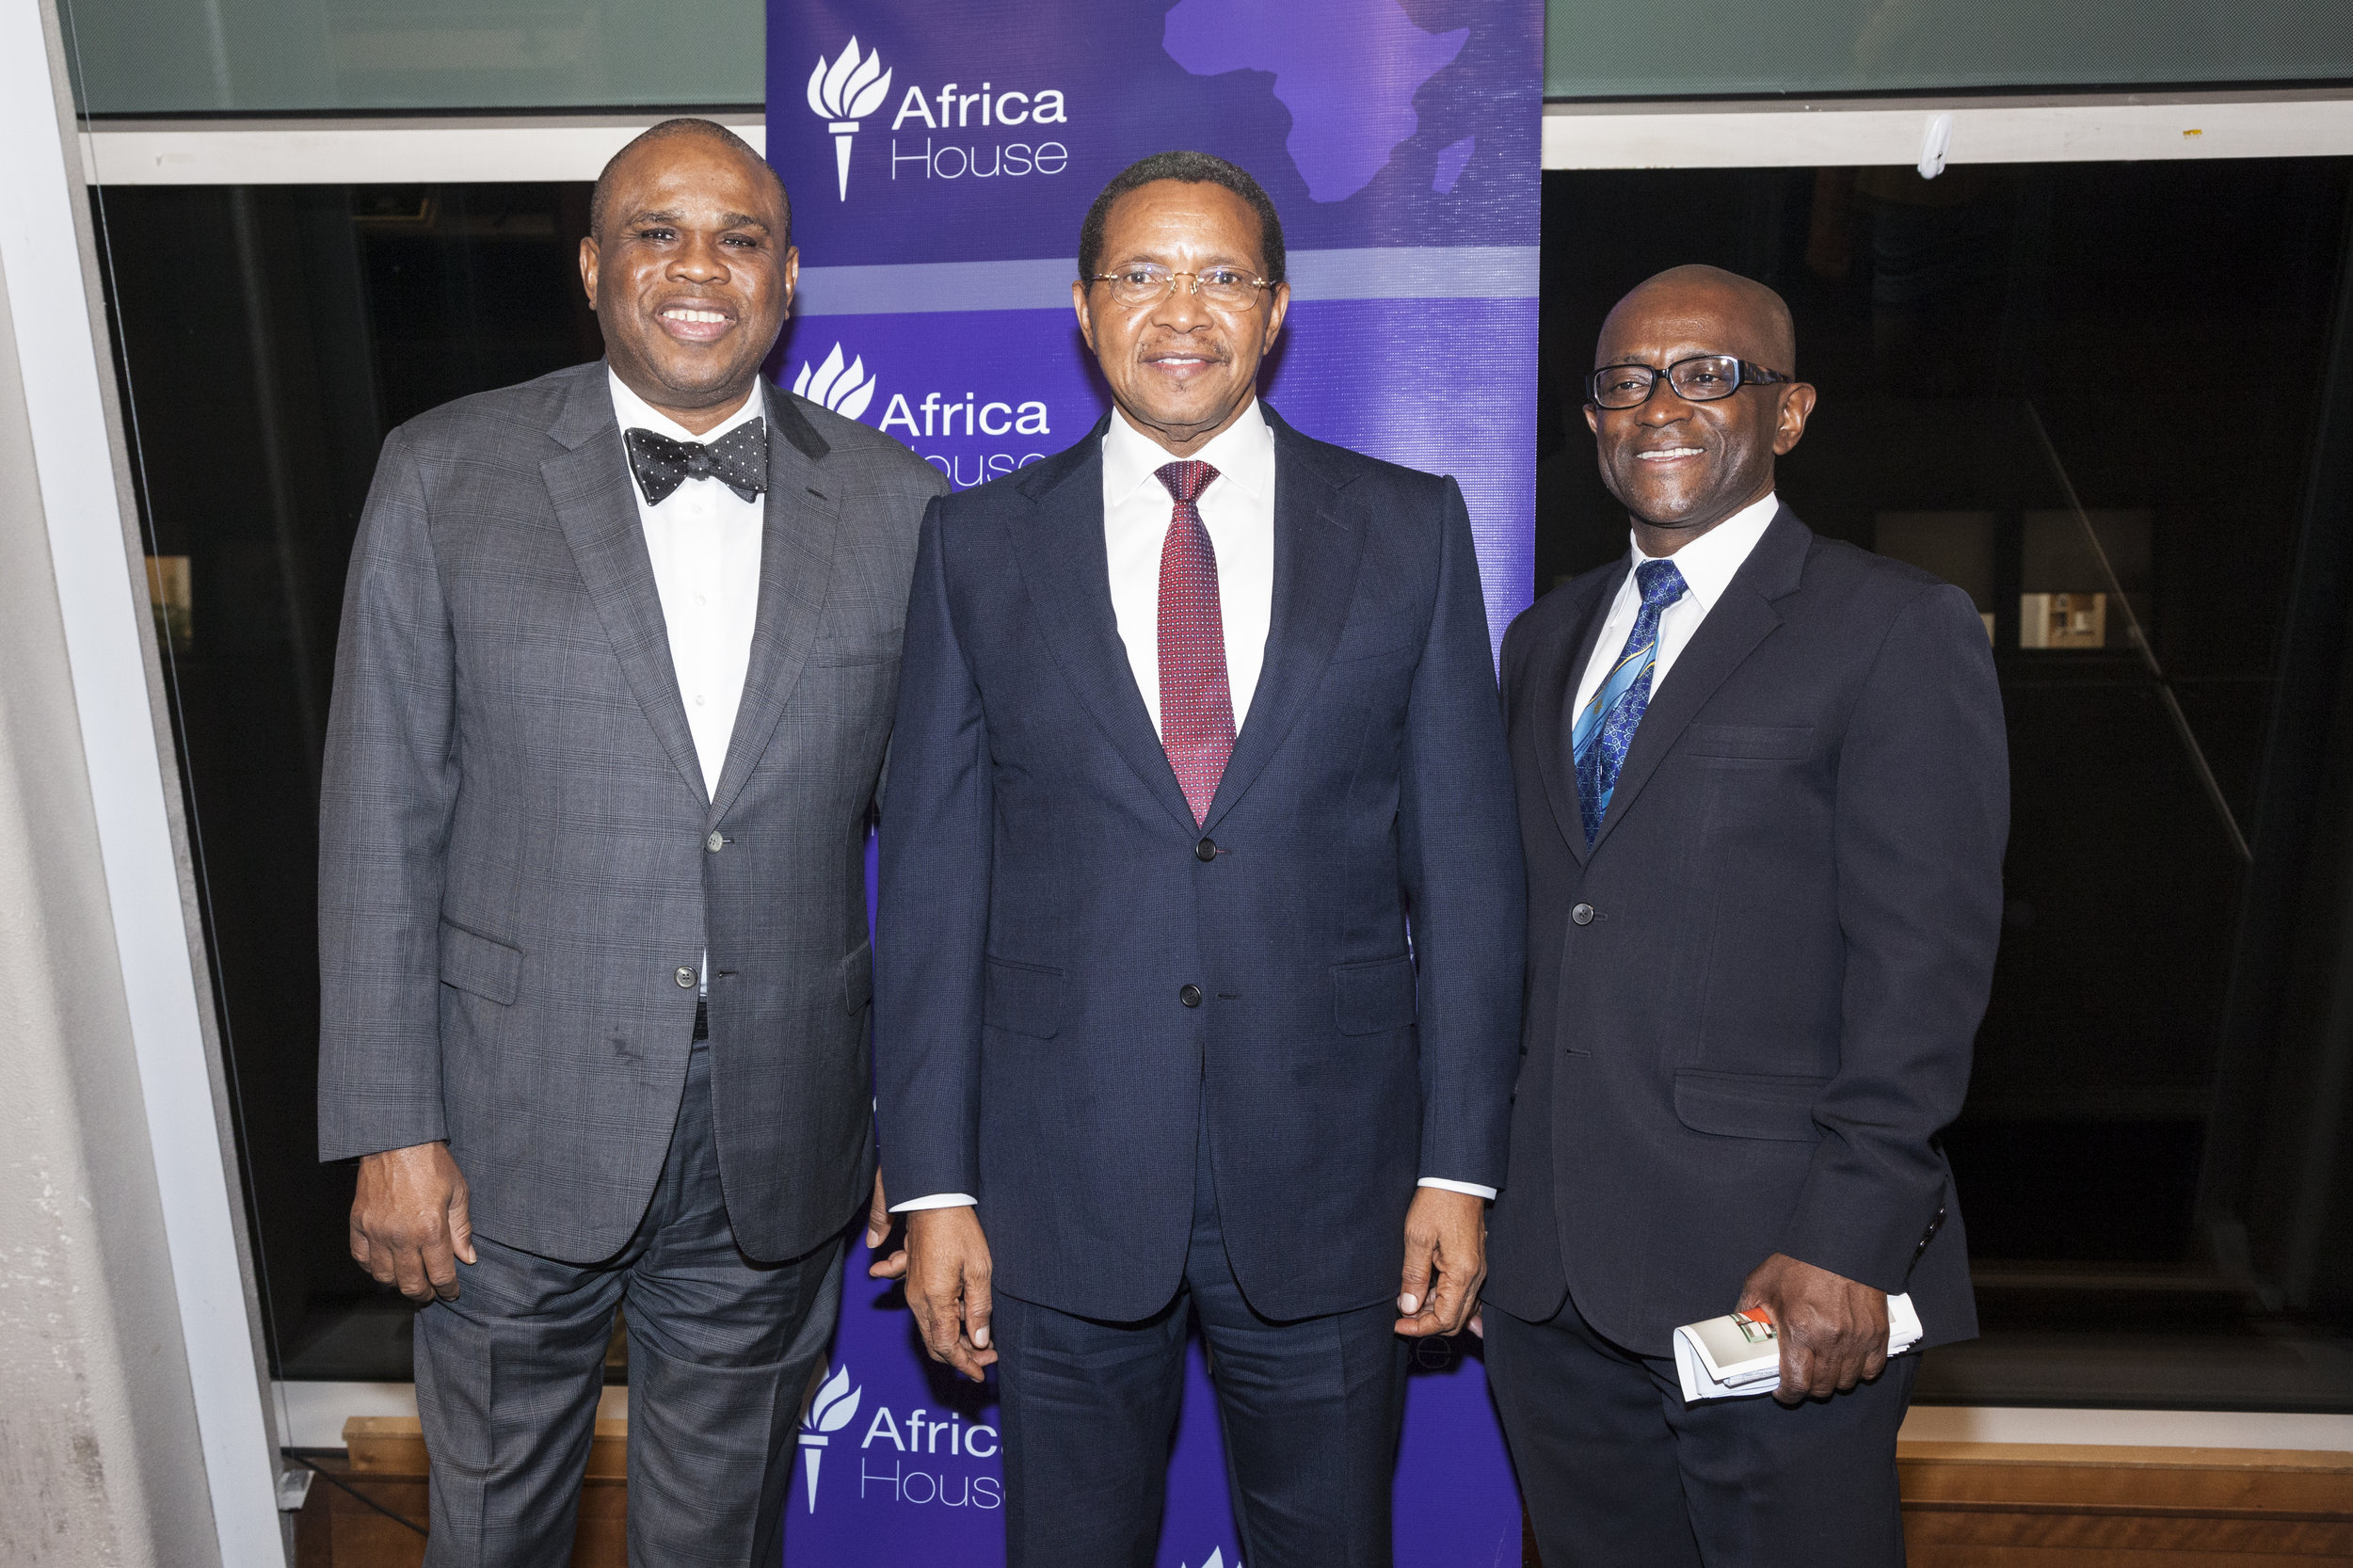 2018 Gala Honorees H.E. Dr. Jakaya M. Kikwete, Former President of the United Republic of Tanzania, and Dr. Benedict Oramah, President of the African Export–Import Bank (Afreximbank)